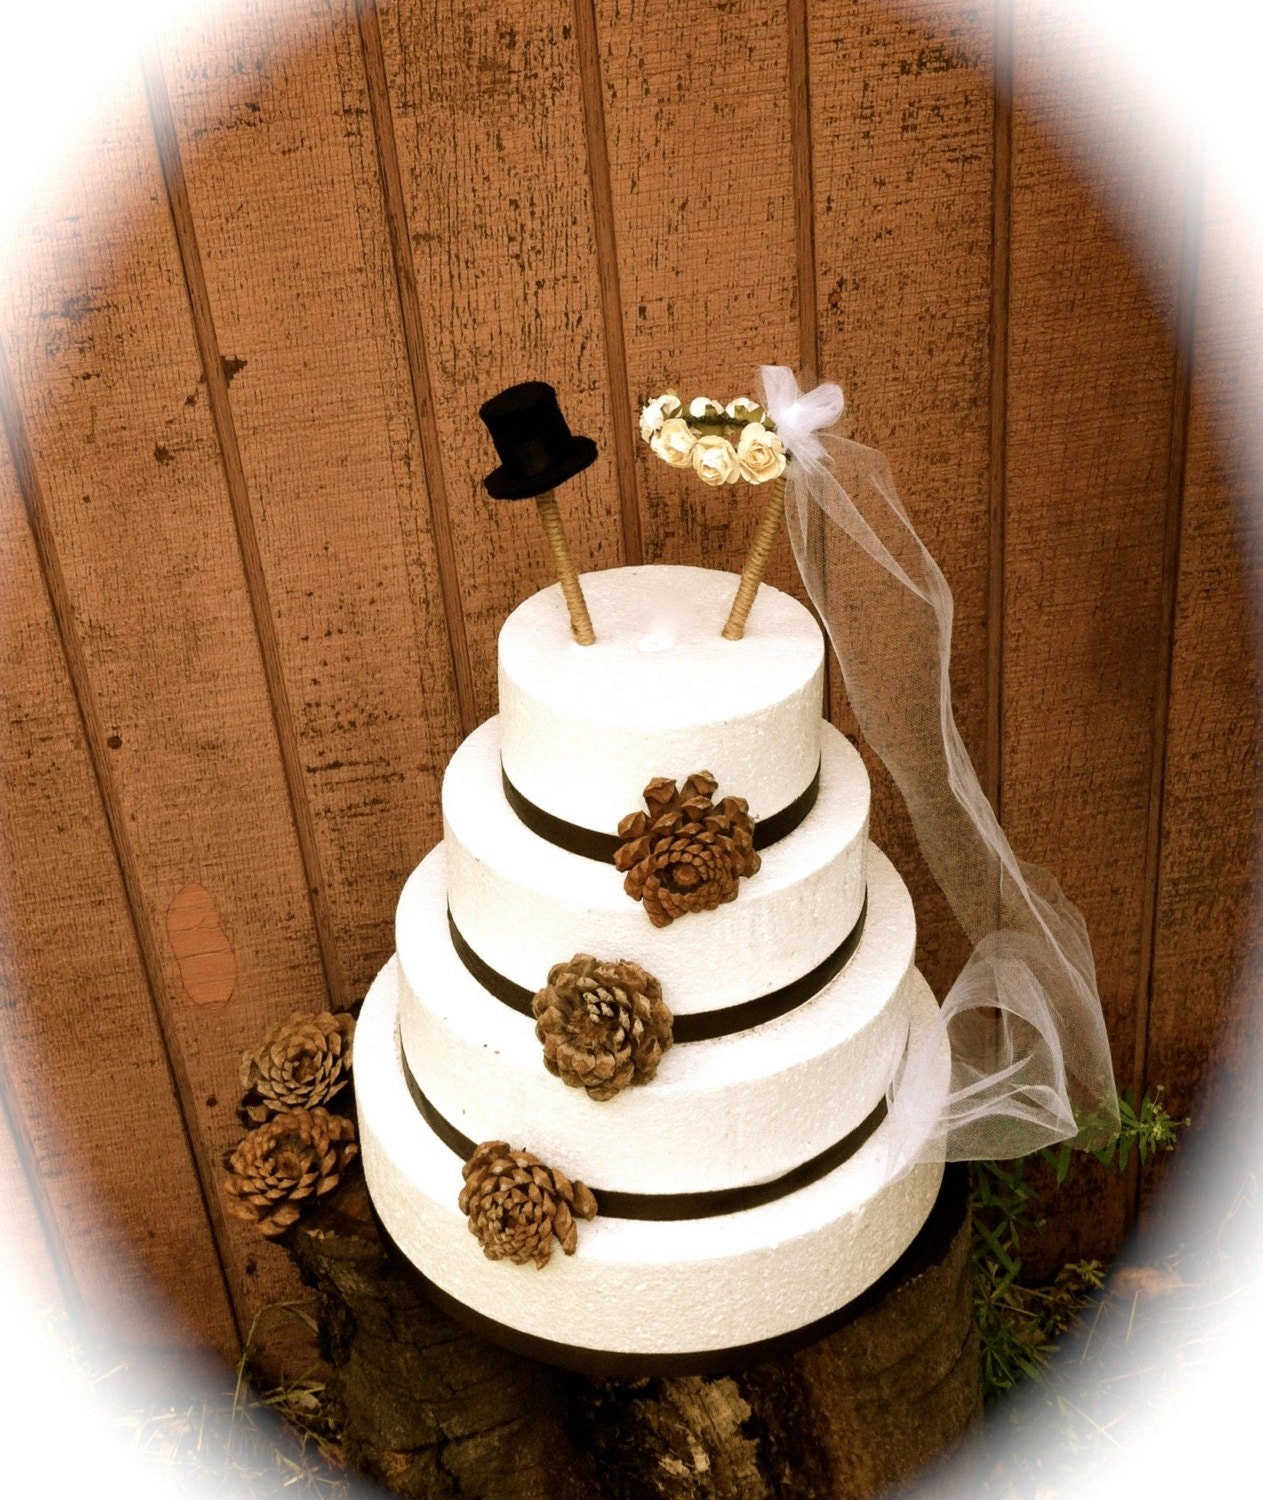 Wedding Cakes Toppers: Rustic Wedding Cake Topper Bride Groom Cake Topper